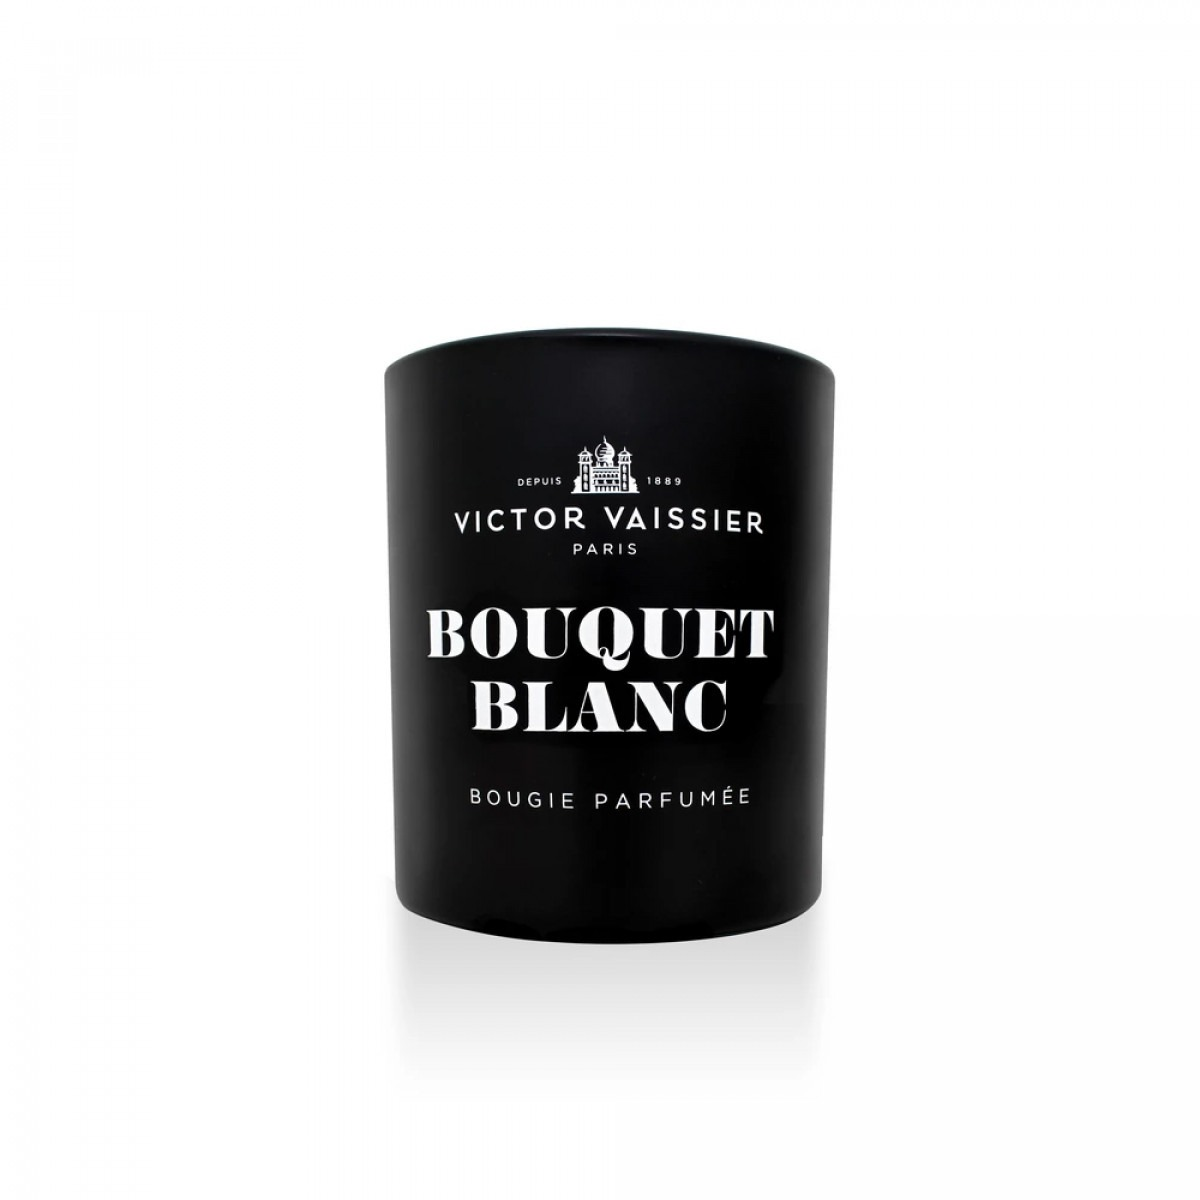 Victor Vaissier Bouquet Blanc Perfumed Candle